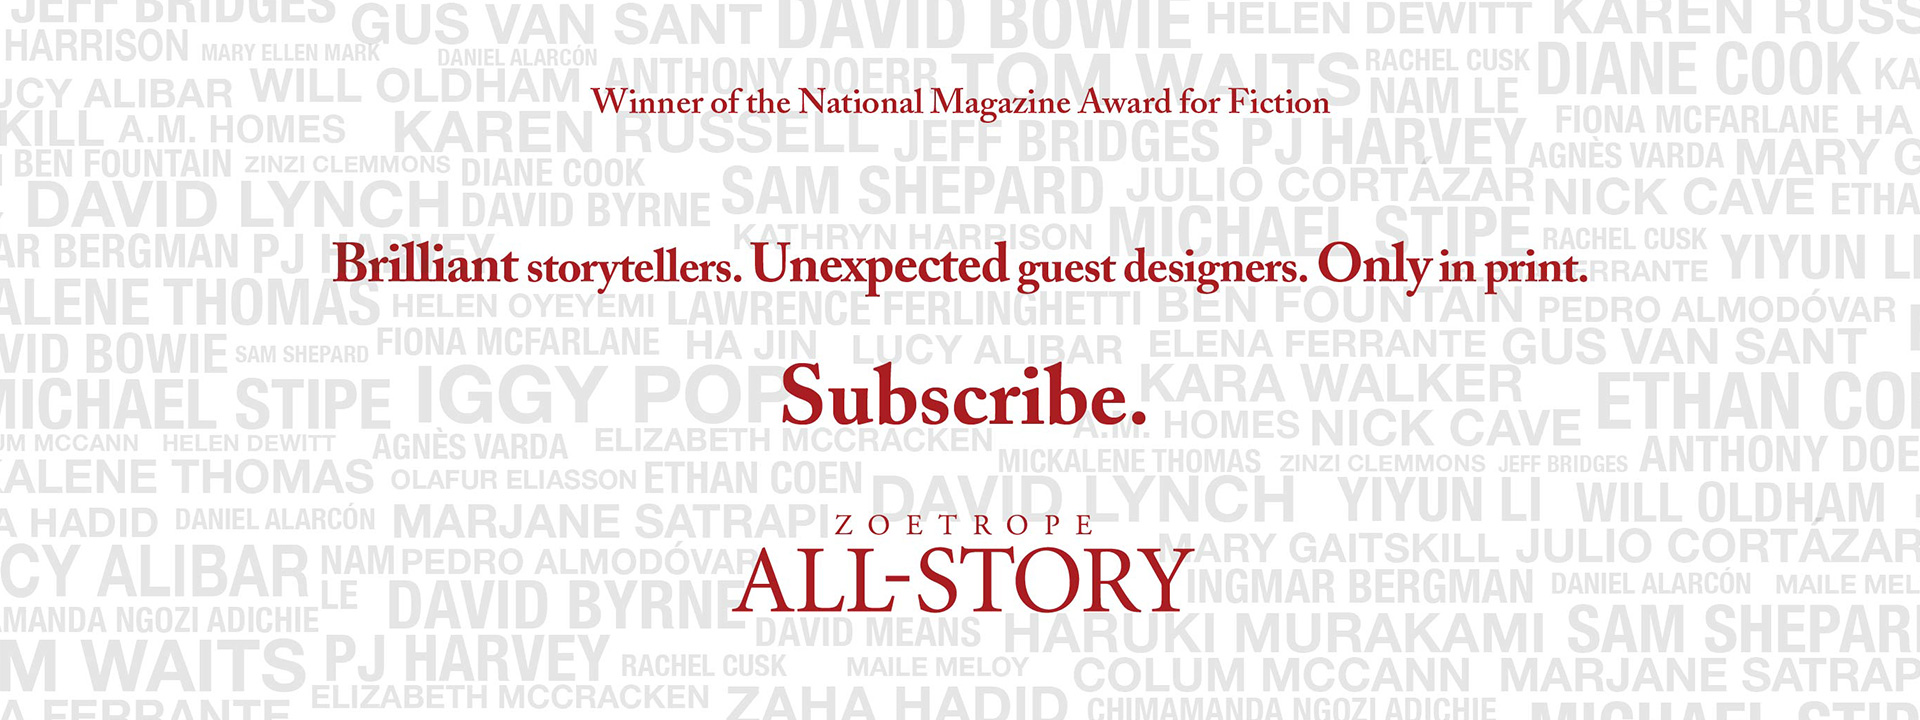 Subscribe to all-story